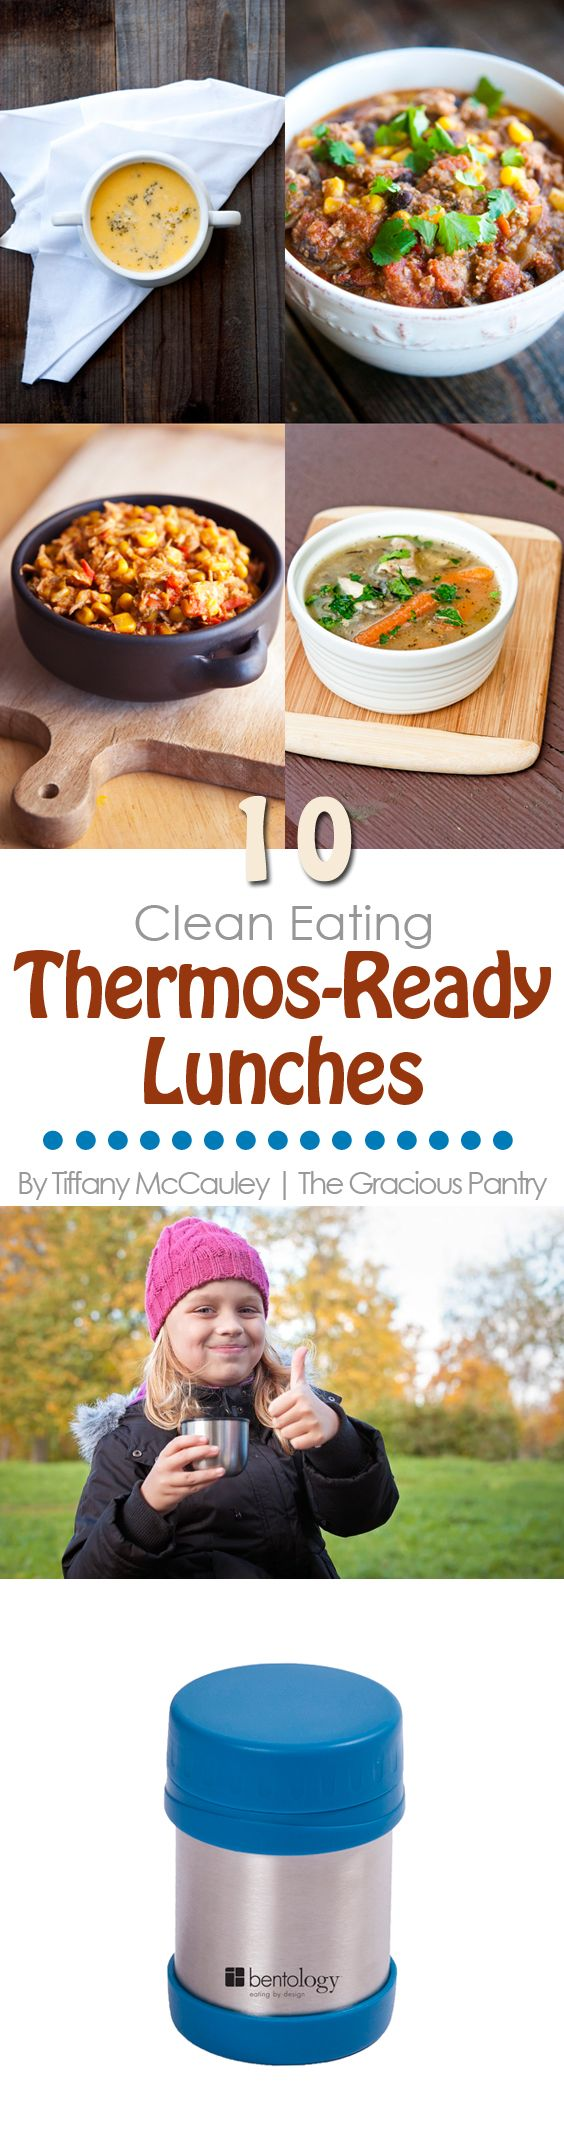 Take a warm thermos full of comfort food for lunch tomorrow with these 10, clean eating, thermos-ready lunch recipes from TheGraciousPantry.com. #Ad